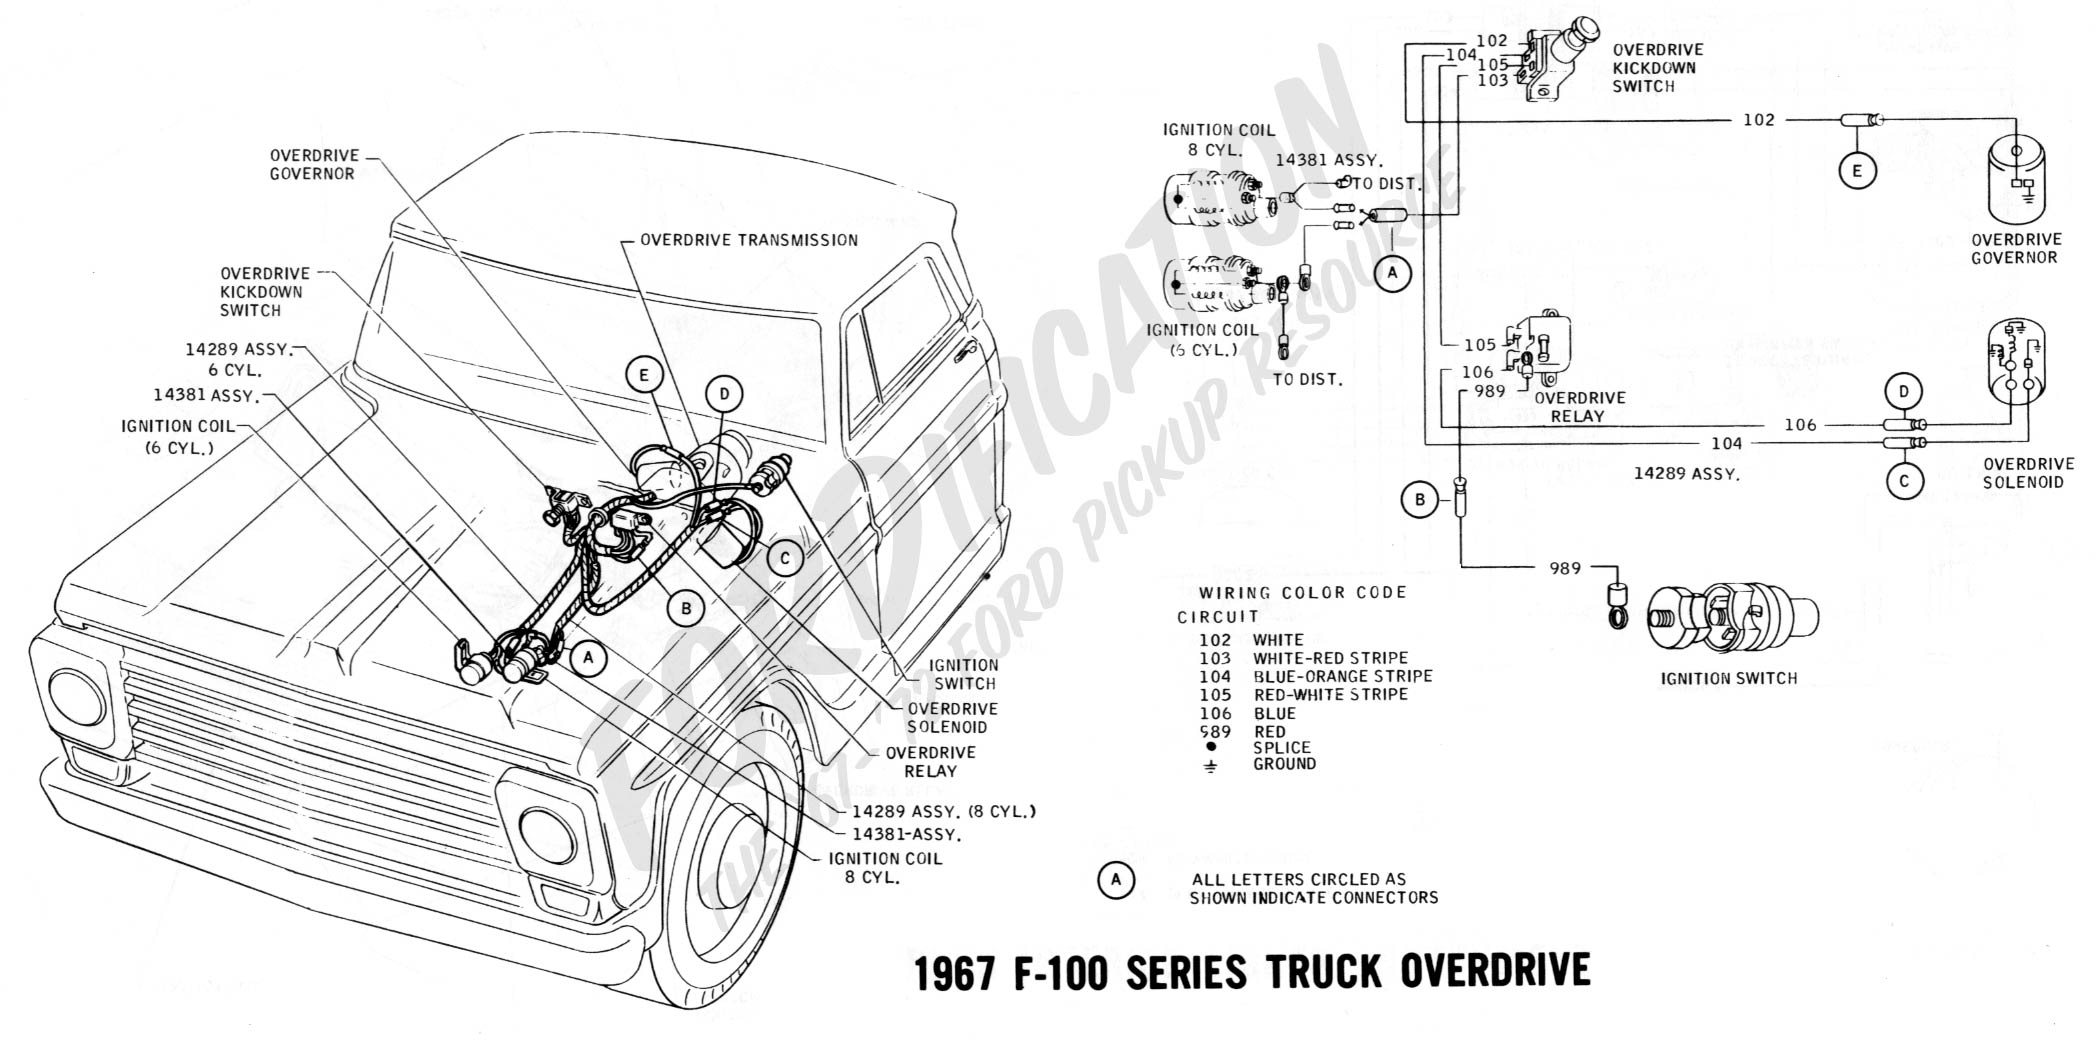 Ford F 150 Interior Parts Diagram moreover 1035785 2006 F350 Fuse Diagrams in addition 87e93 Explorer Xlt 4x4 2004 Explorer Xlt Rear Air additionally 2003 Ford Econoline Van Fuse Box Diagram Under Hood as well Fuses. on 2004 ford f350 fuse panel diagram